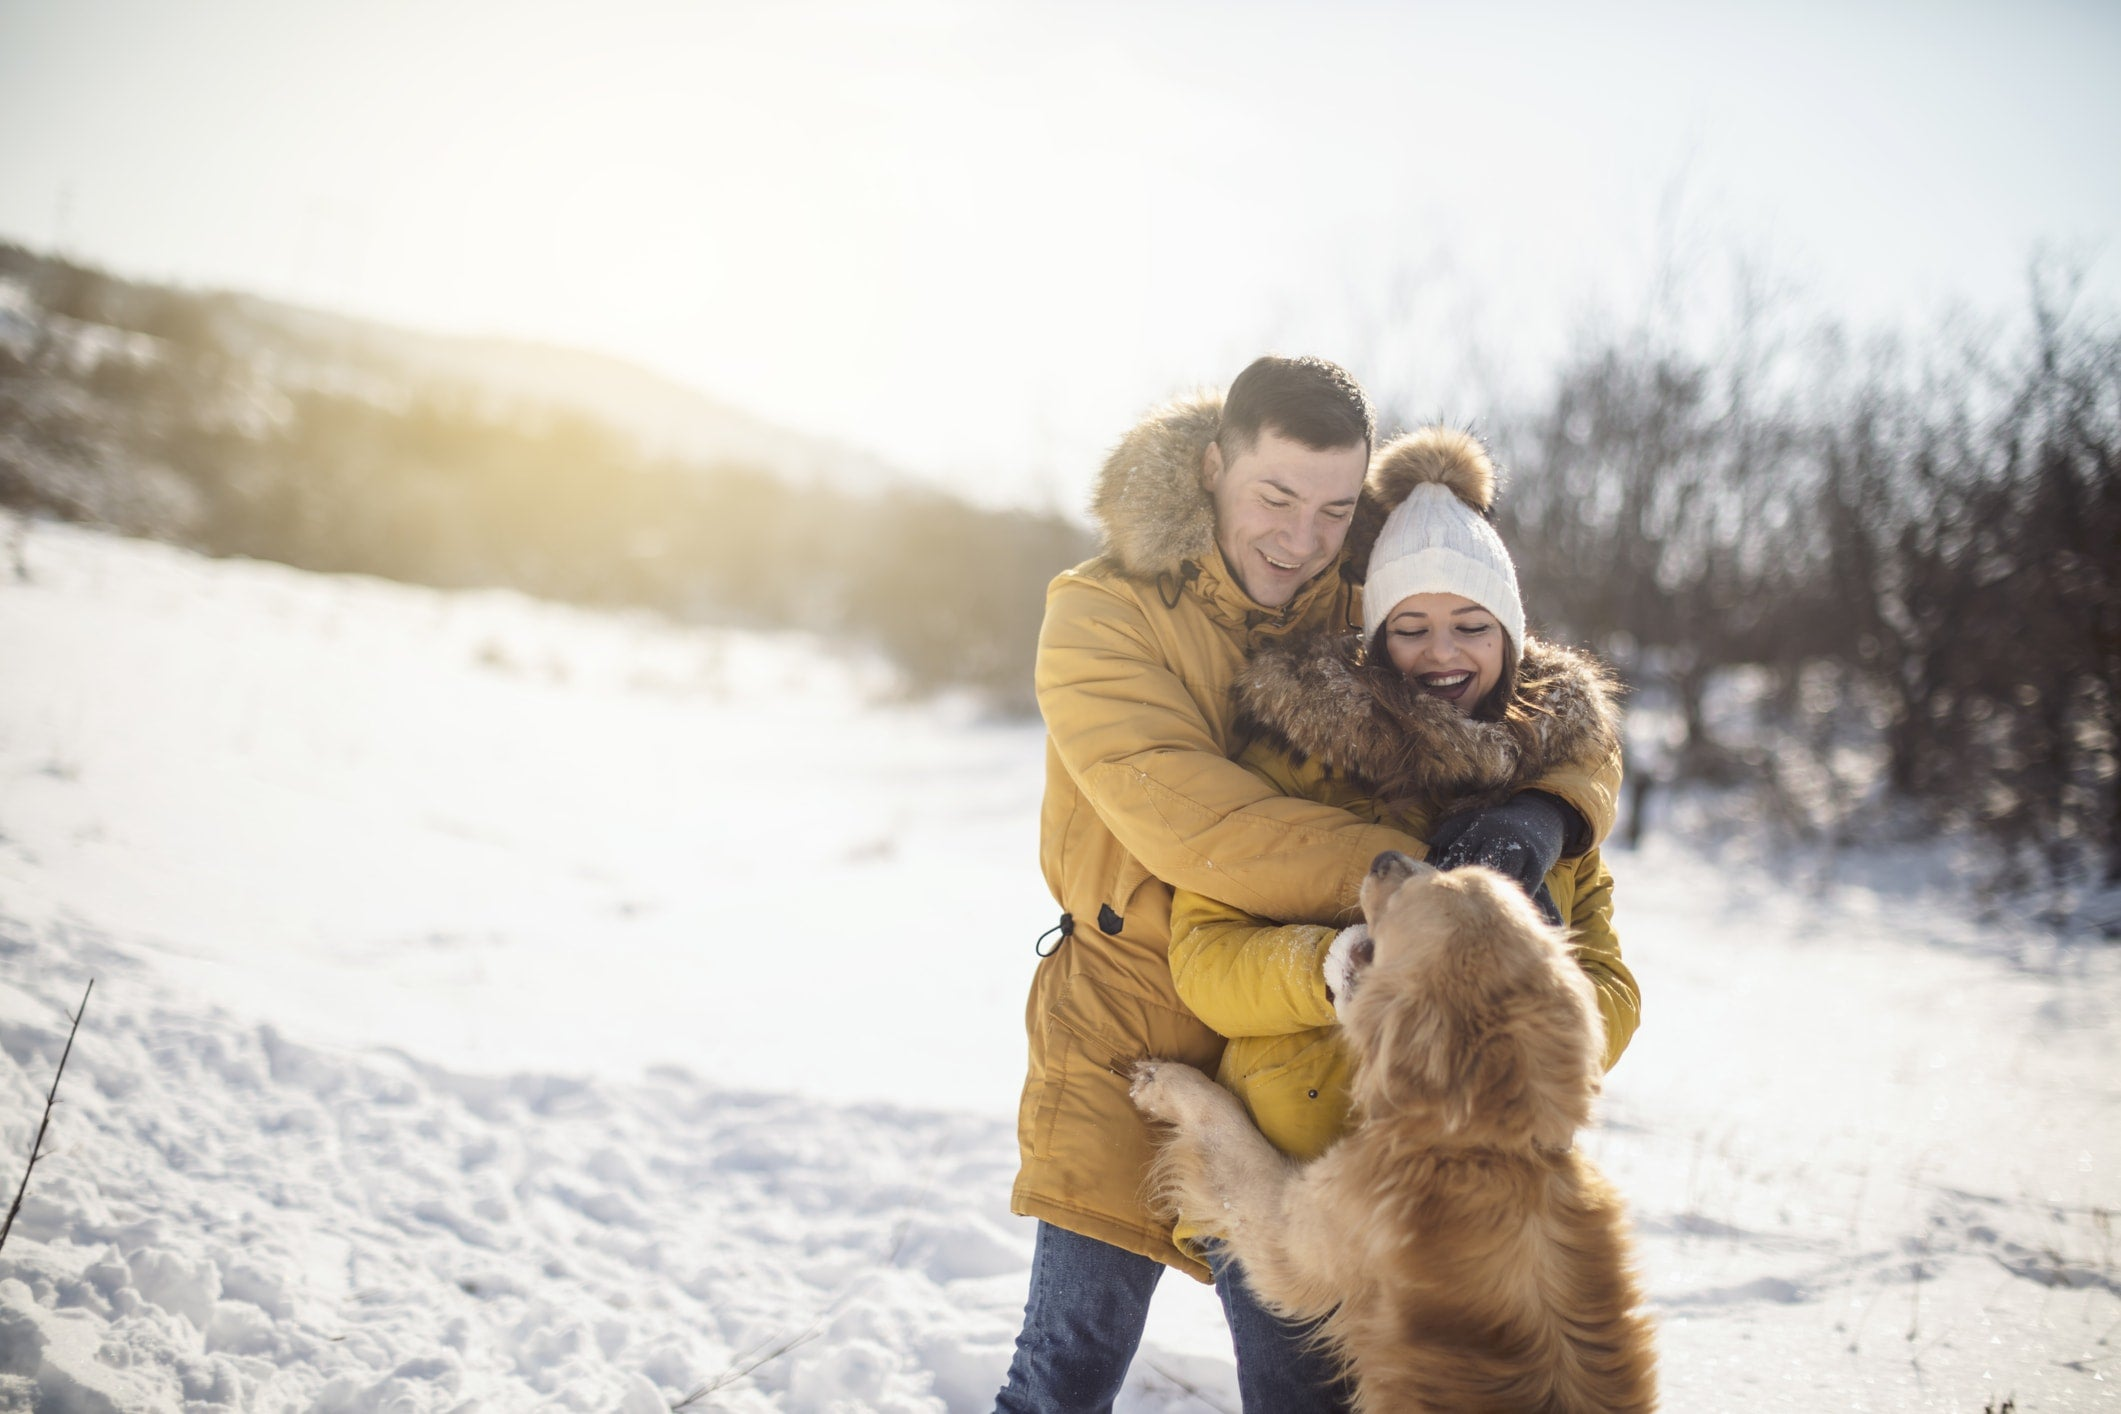 Keep Your Pets Warm With These 8 Winter Safety Tips